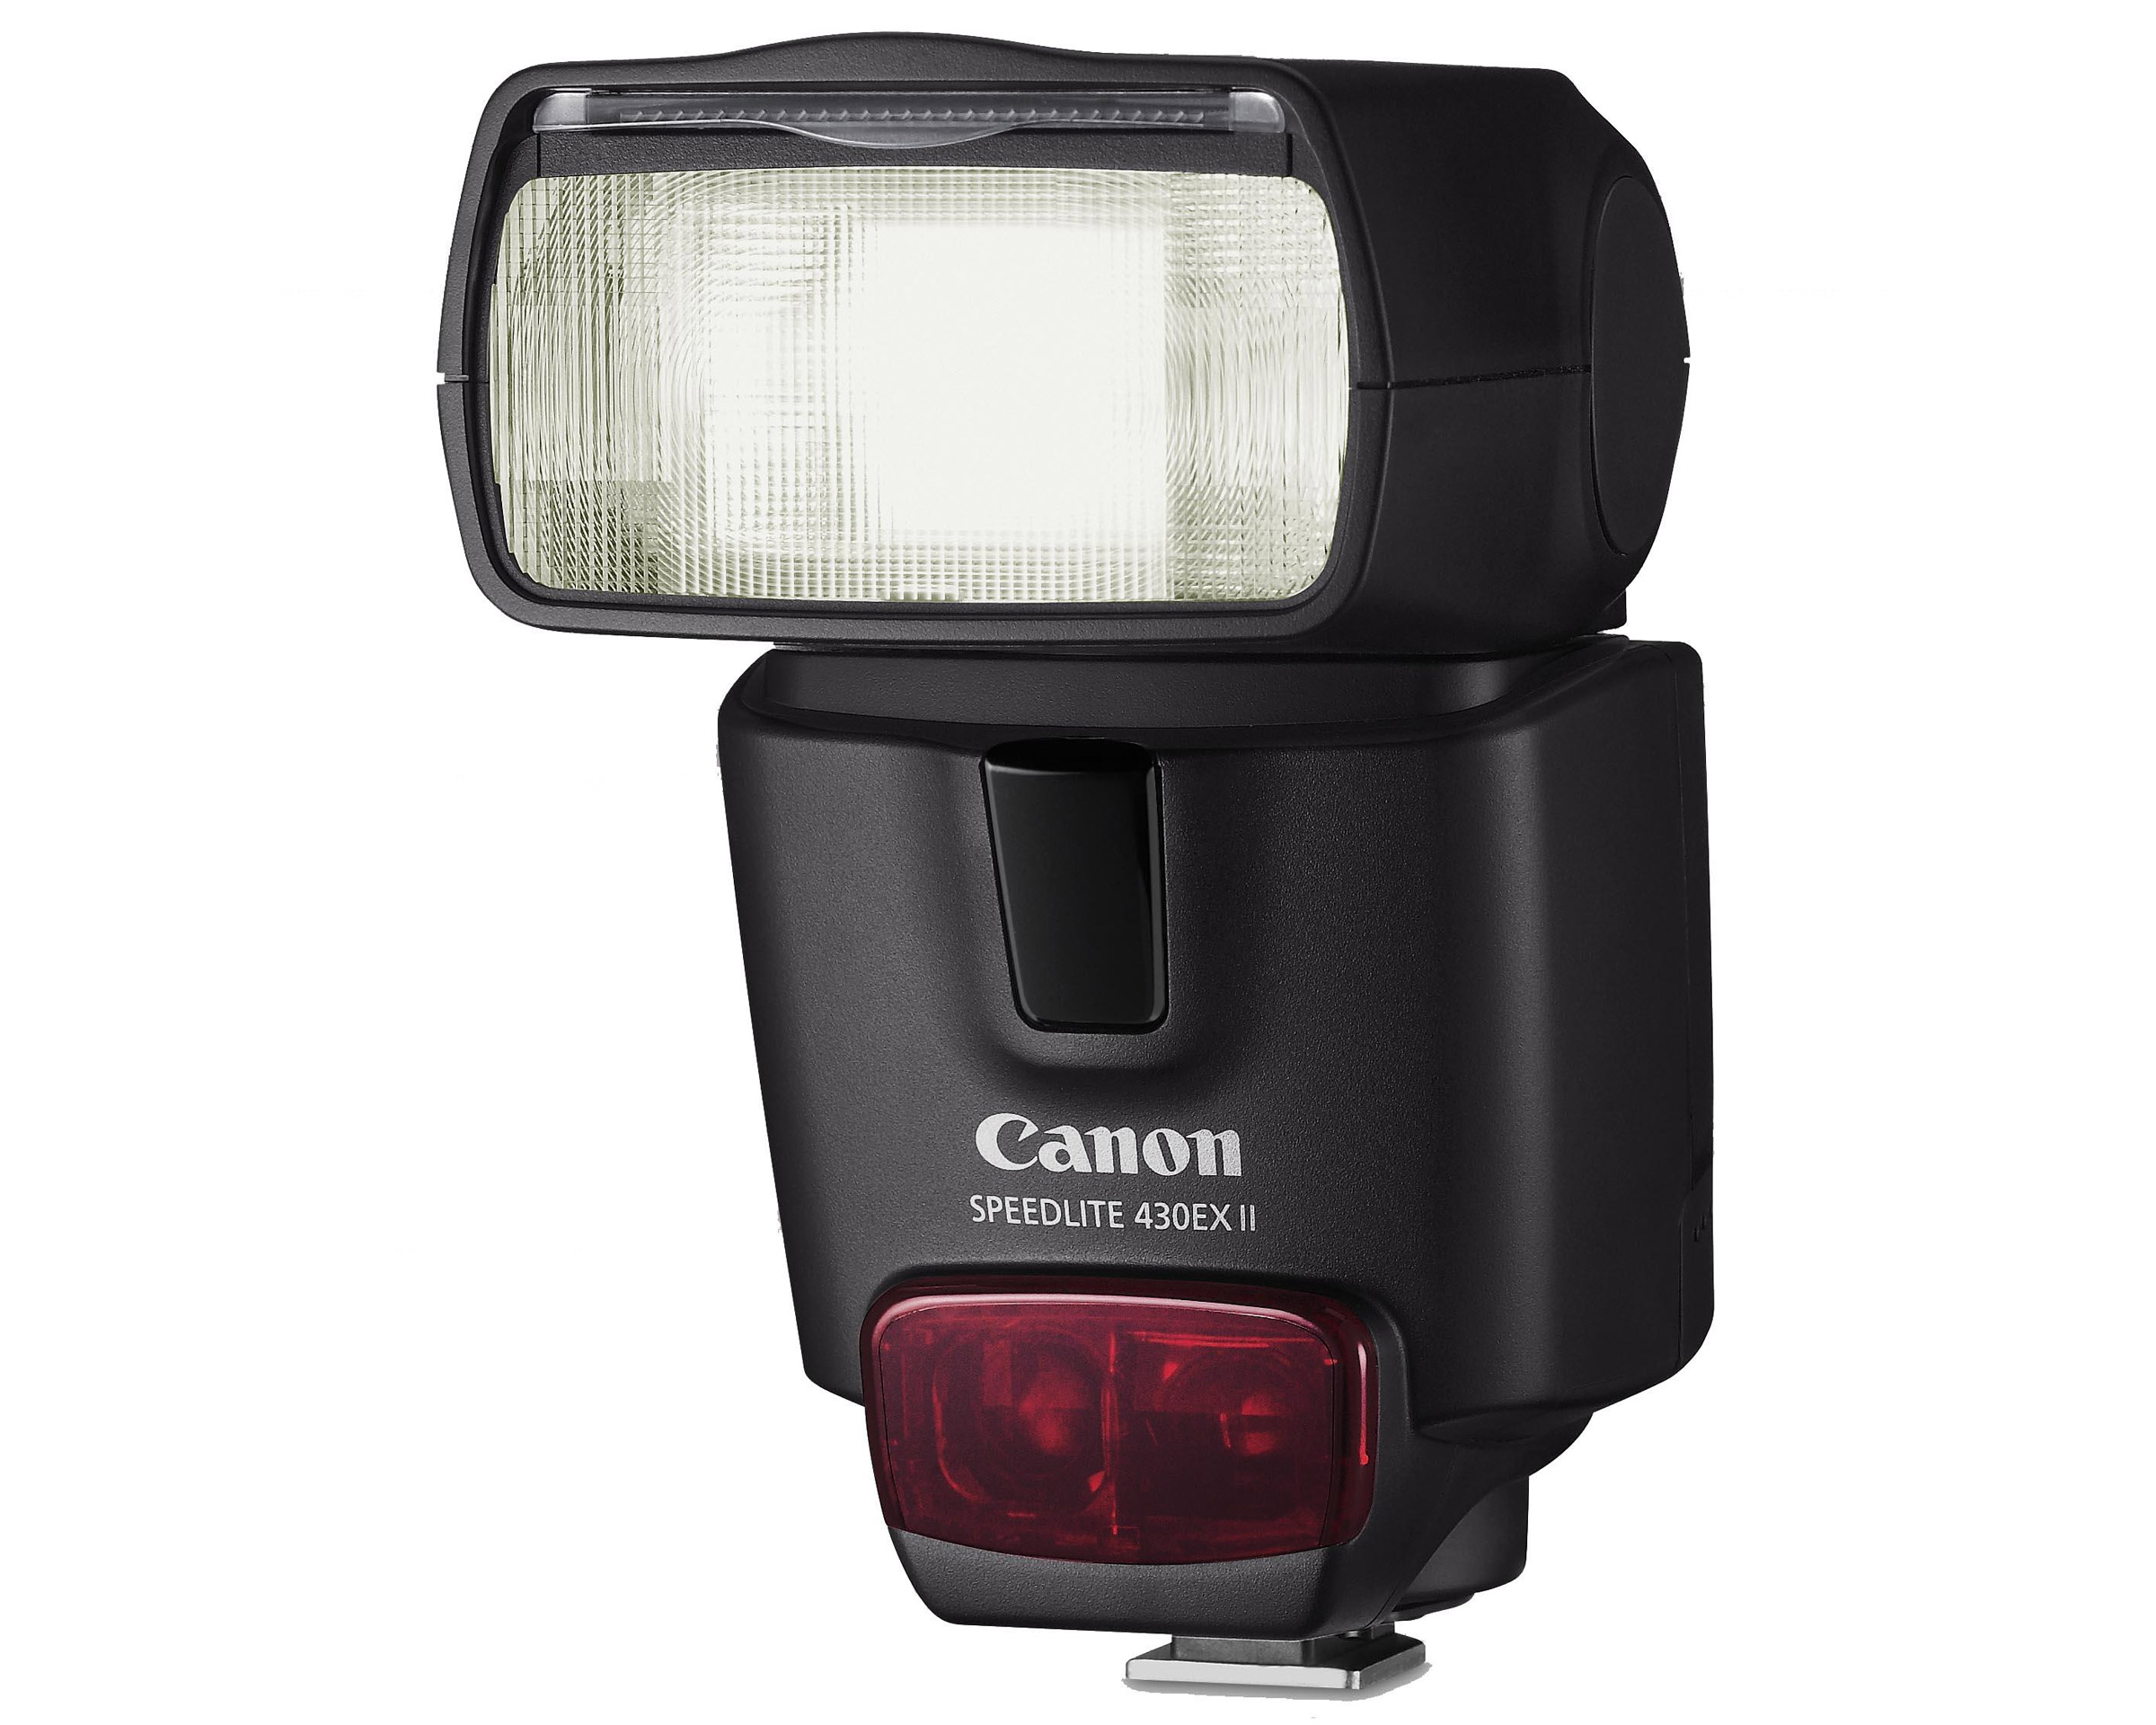 Canon Speedlite 430EX II : Specifications and Opinions